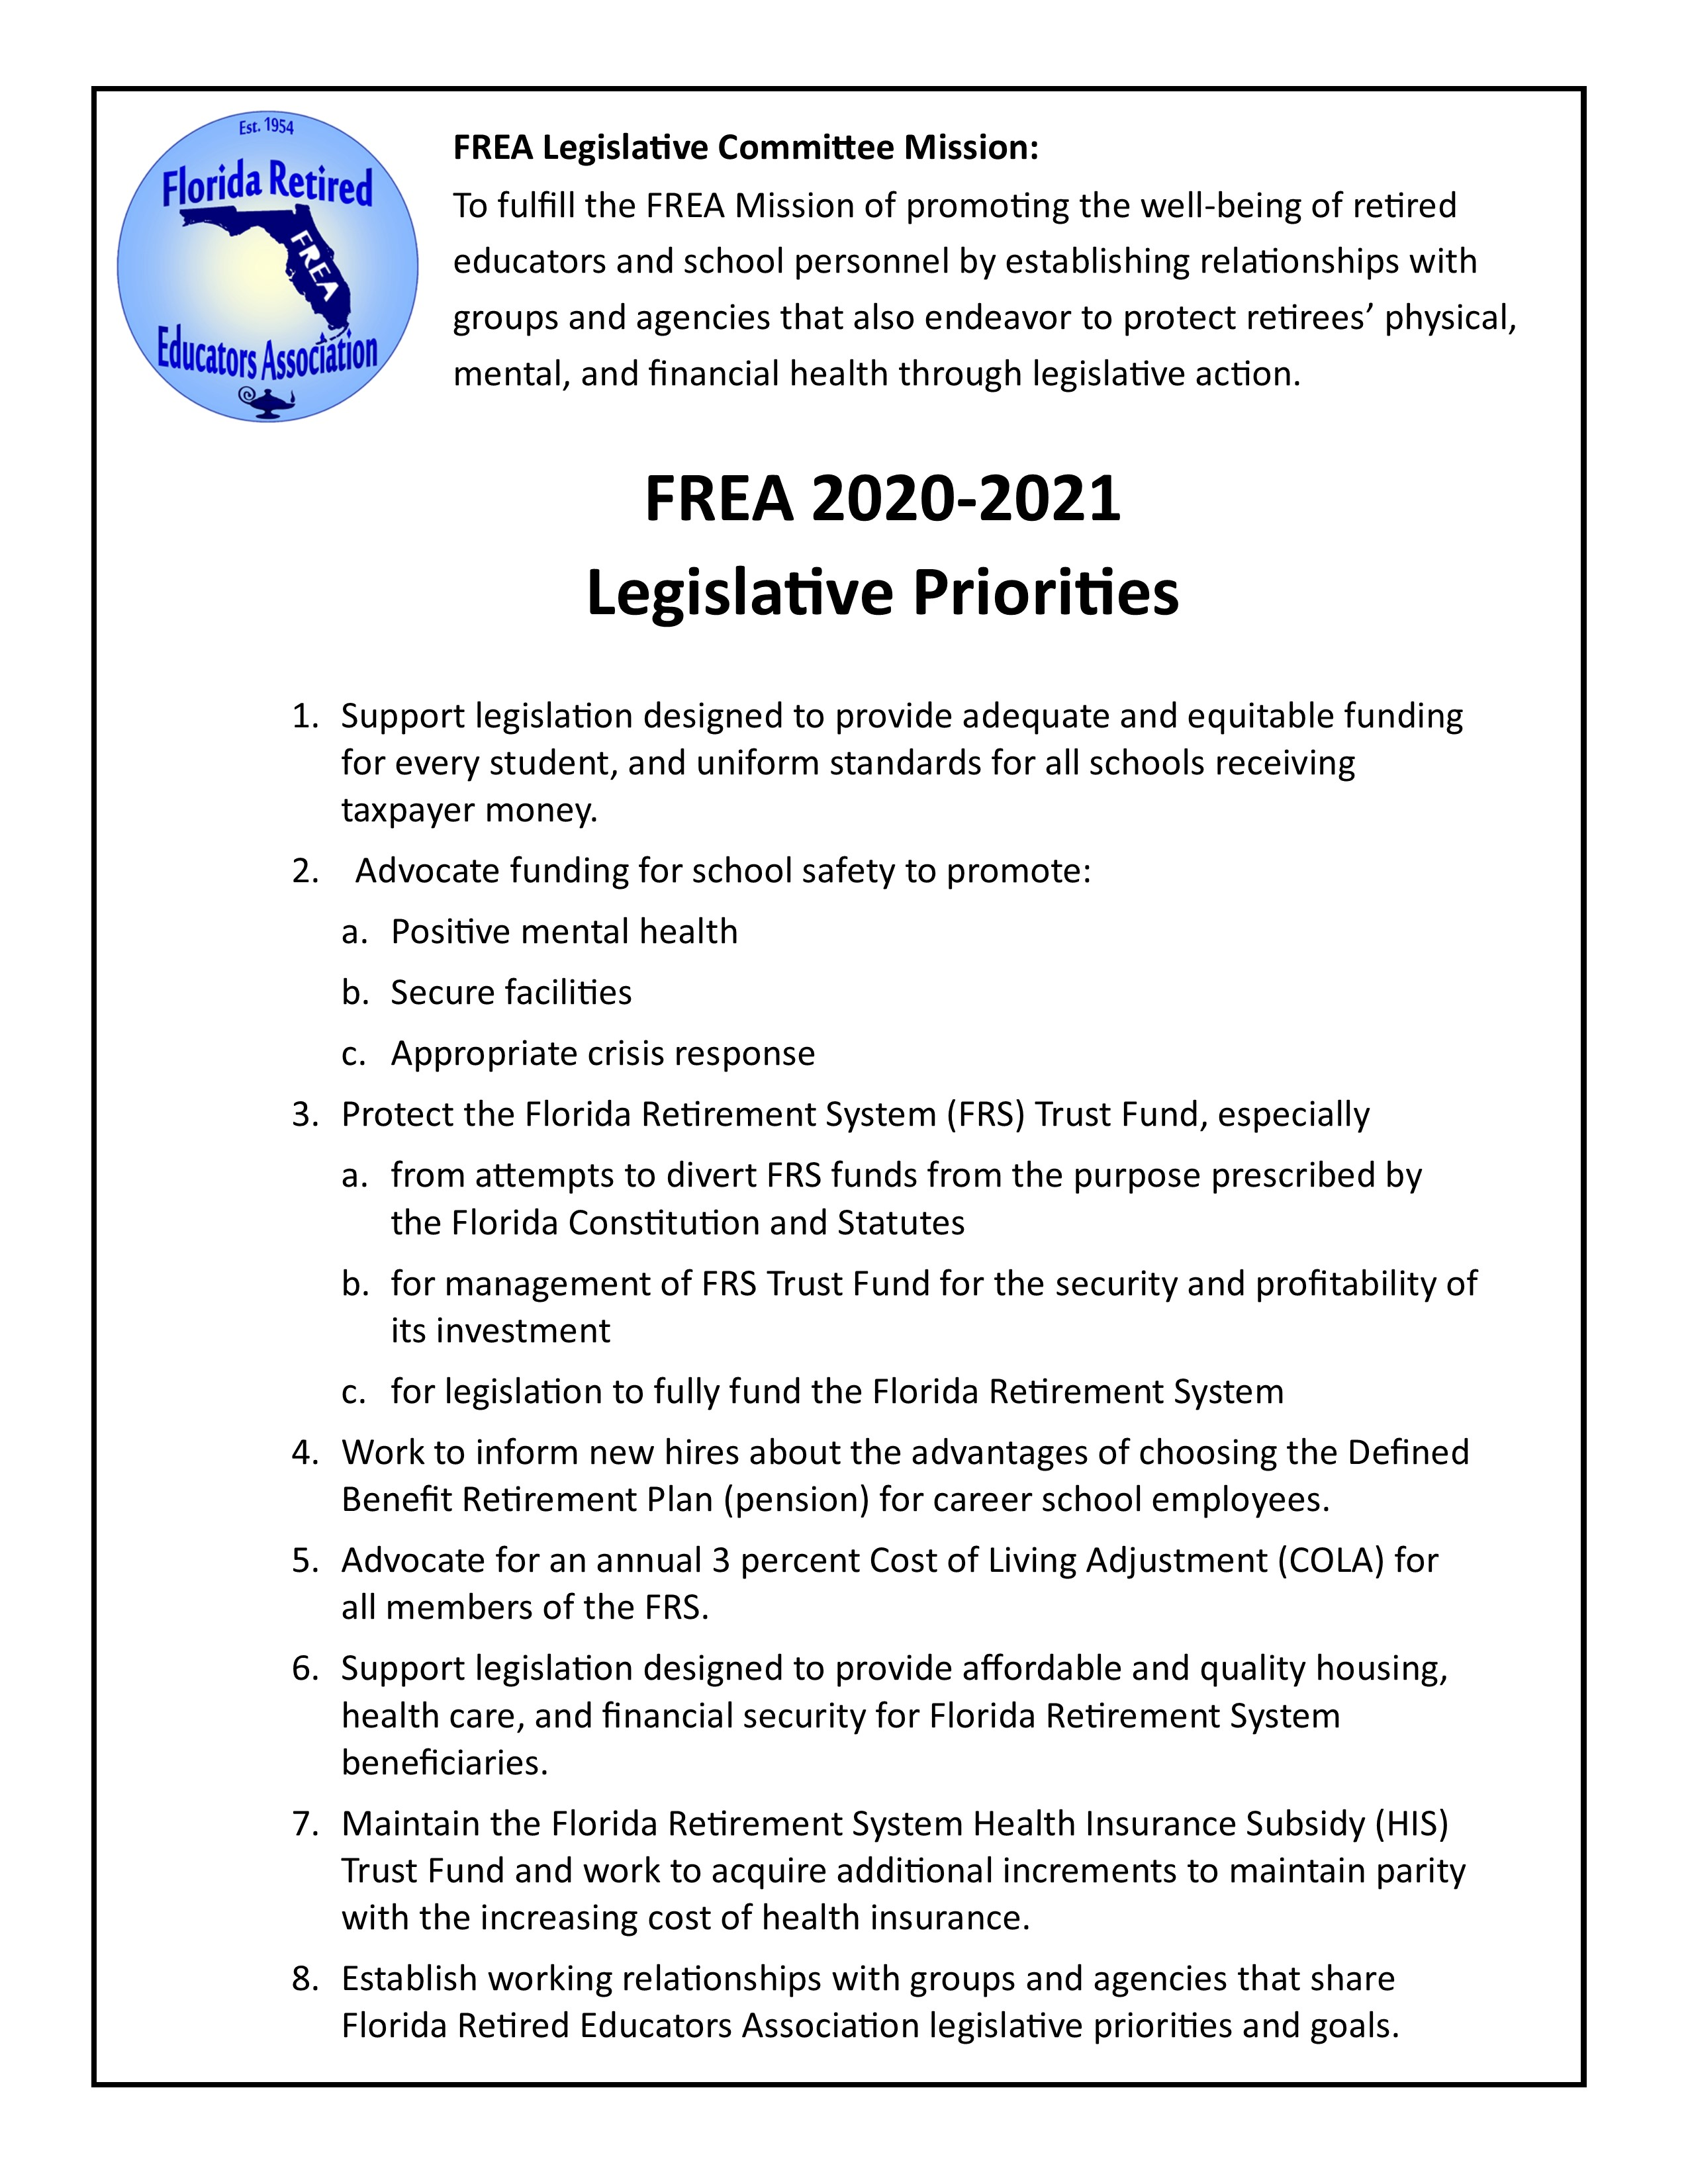 2020-2021 Legislative Priorities